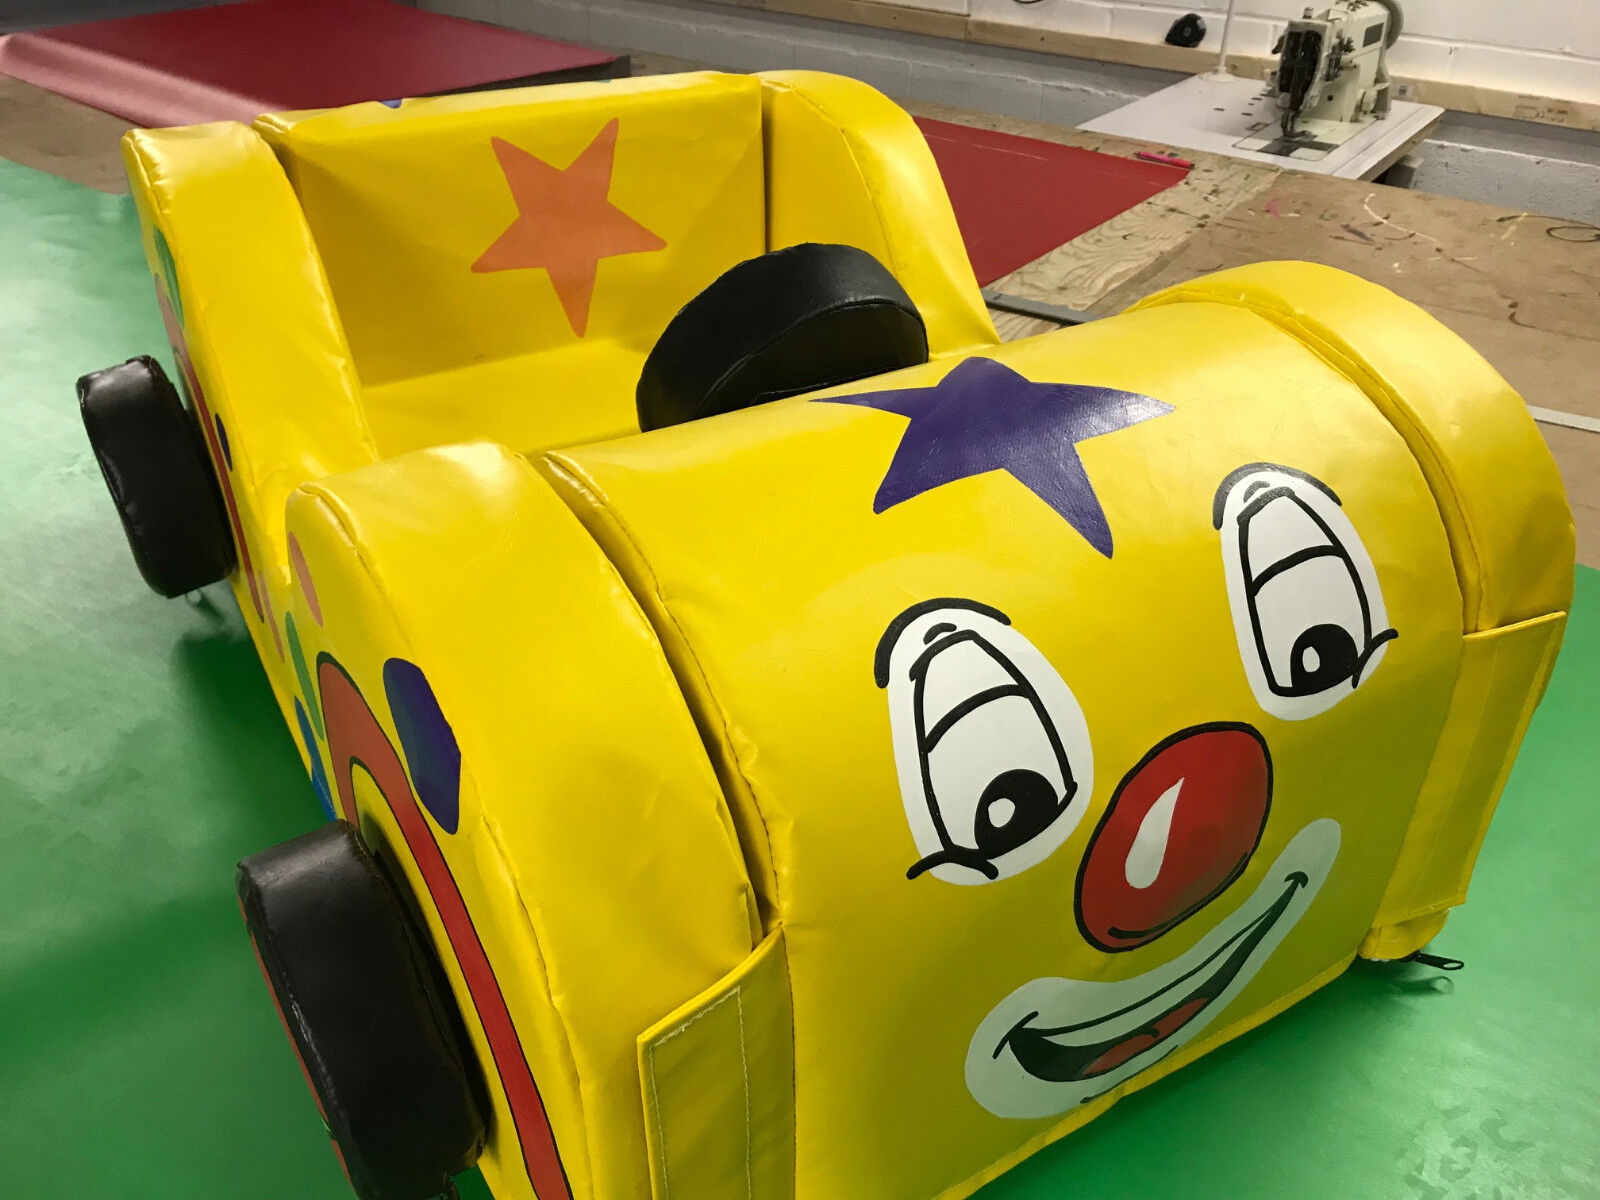 Clown/ Circus Car Soft Play vel-cro together + carry bag. Hand Painted